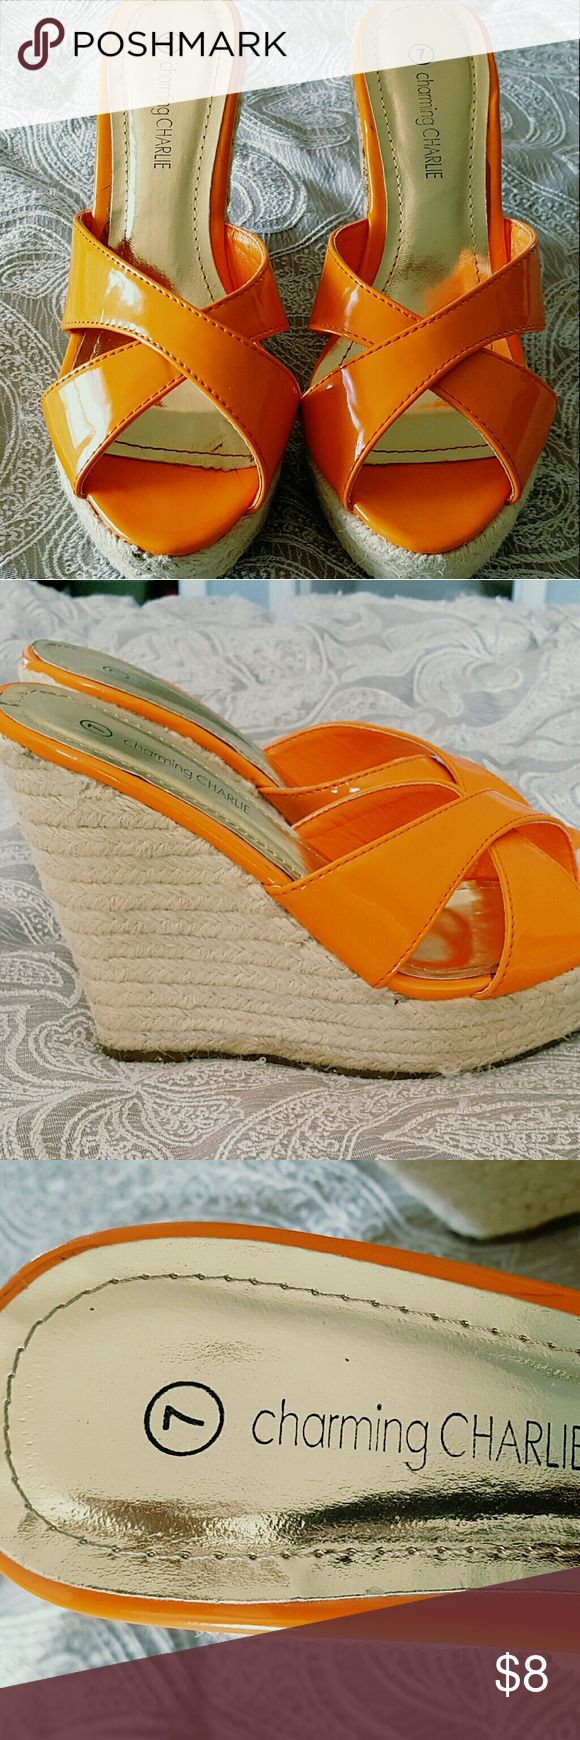 Charming Charlie Orange Wedges Bright orange with gold accent. Tan heel. Used, in good condition. Bottoms are scratched but rest of wedge looks good. These wedges are pretty tall (so walk carefully). Charming Charlie Shoes Wedges